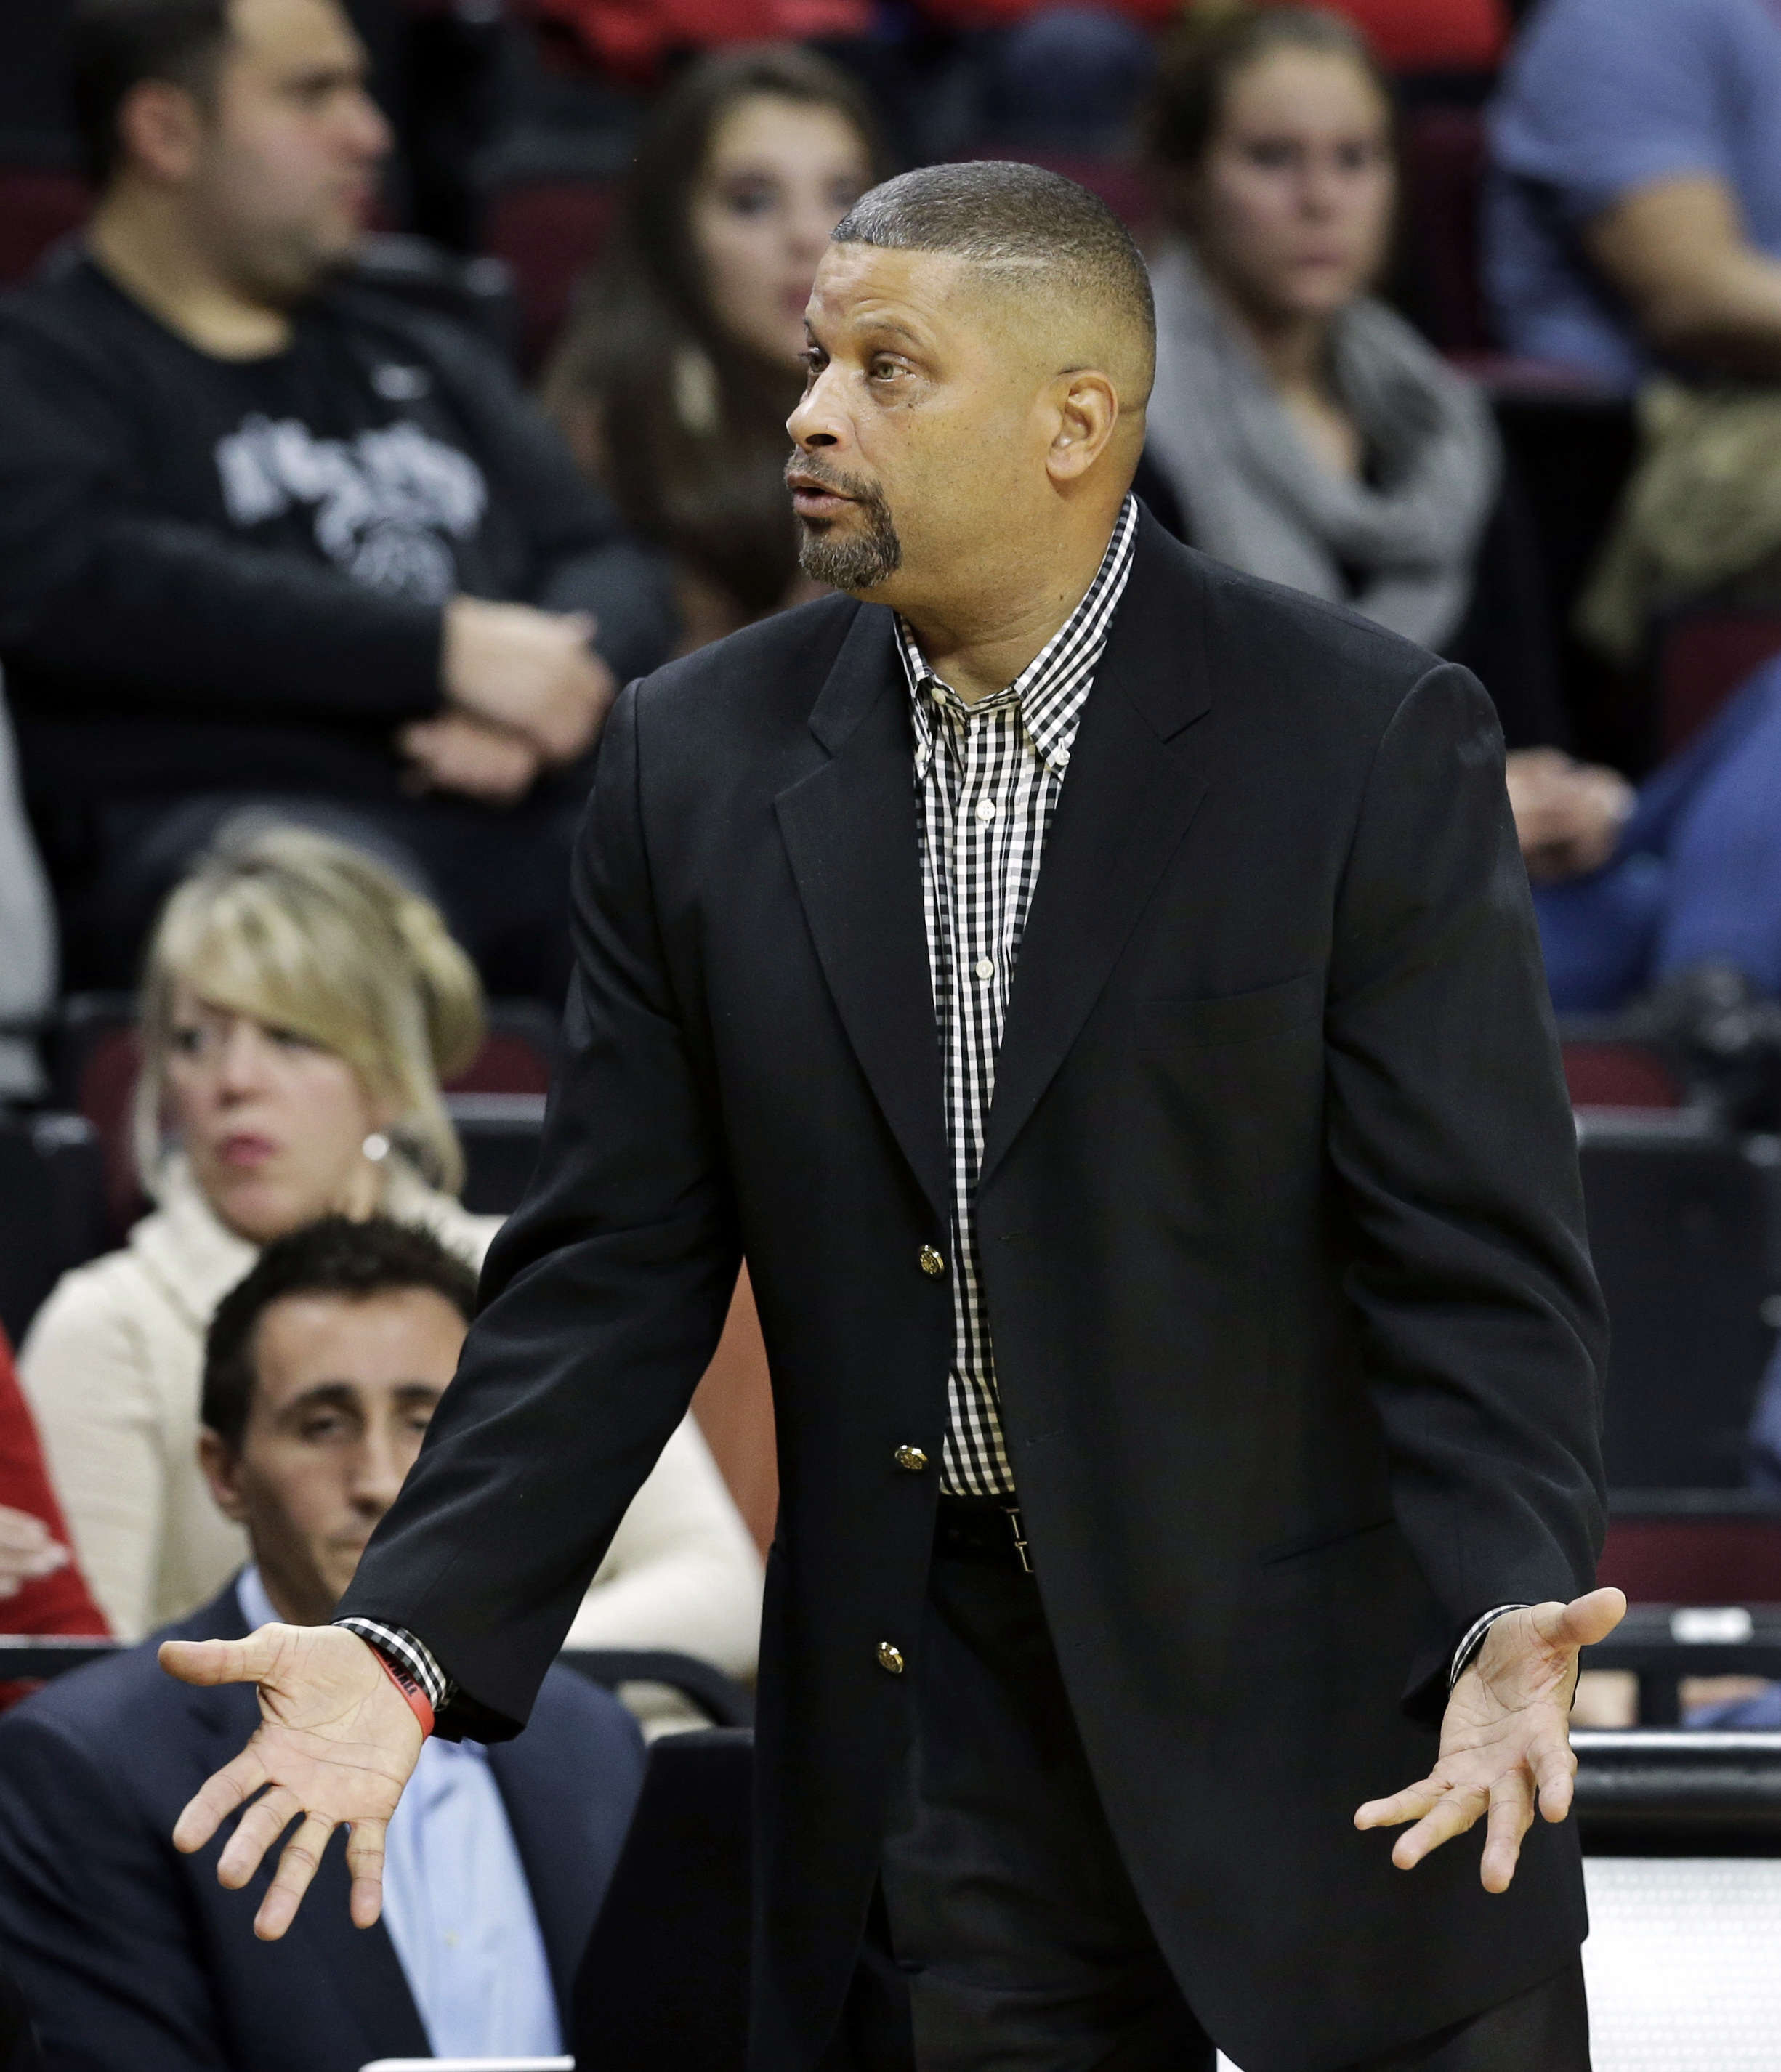 Rutgers head coach Eddie Jordan reacts to a call during the first half of an NCAA college basketball game against Howard, Sunday, Nov. 15, 2015, in Piscataway, N.J. (AP Photo/Mel Evans)